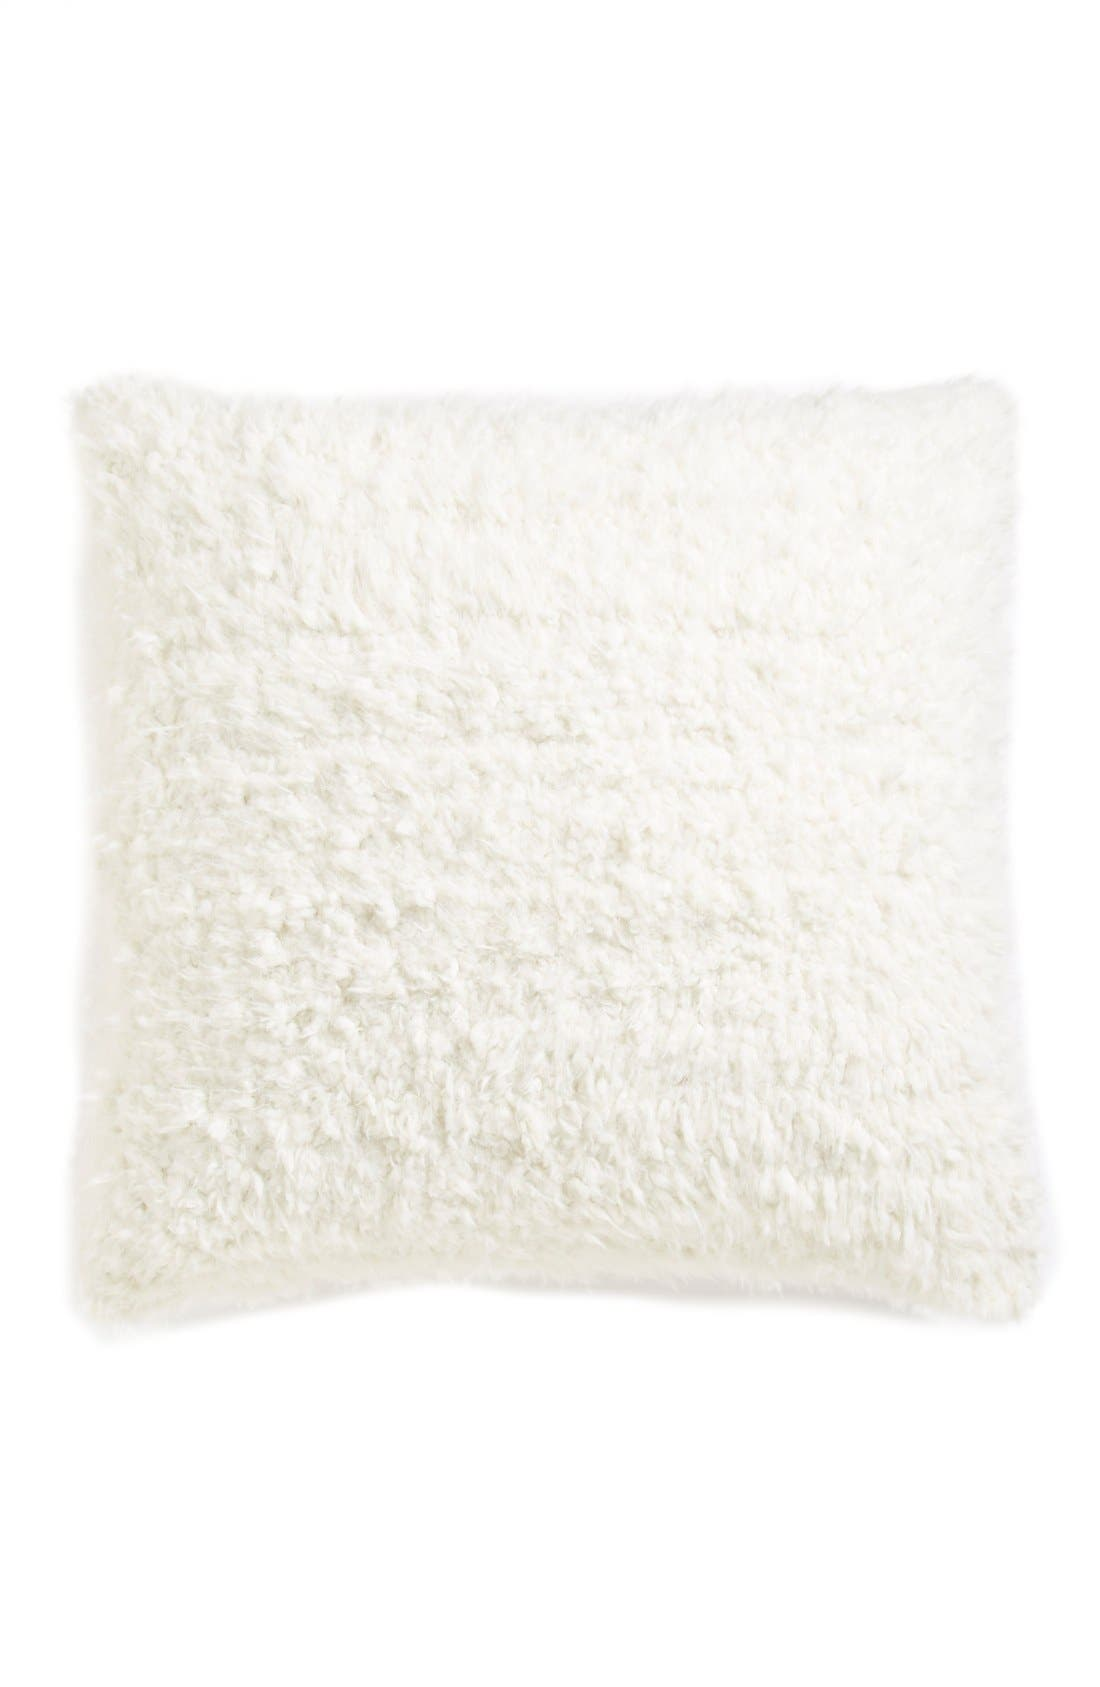 Shaggy Plush Pillow,                         Main,                         color, Ivory